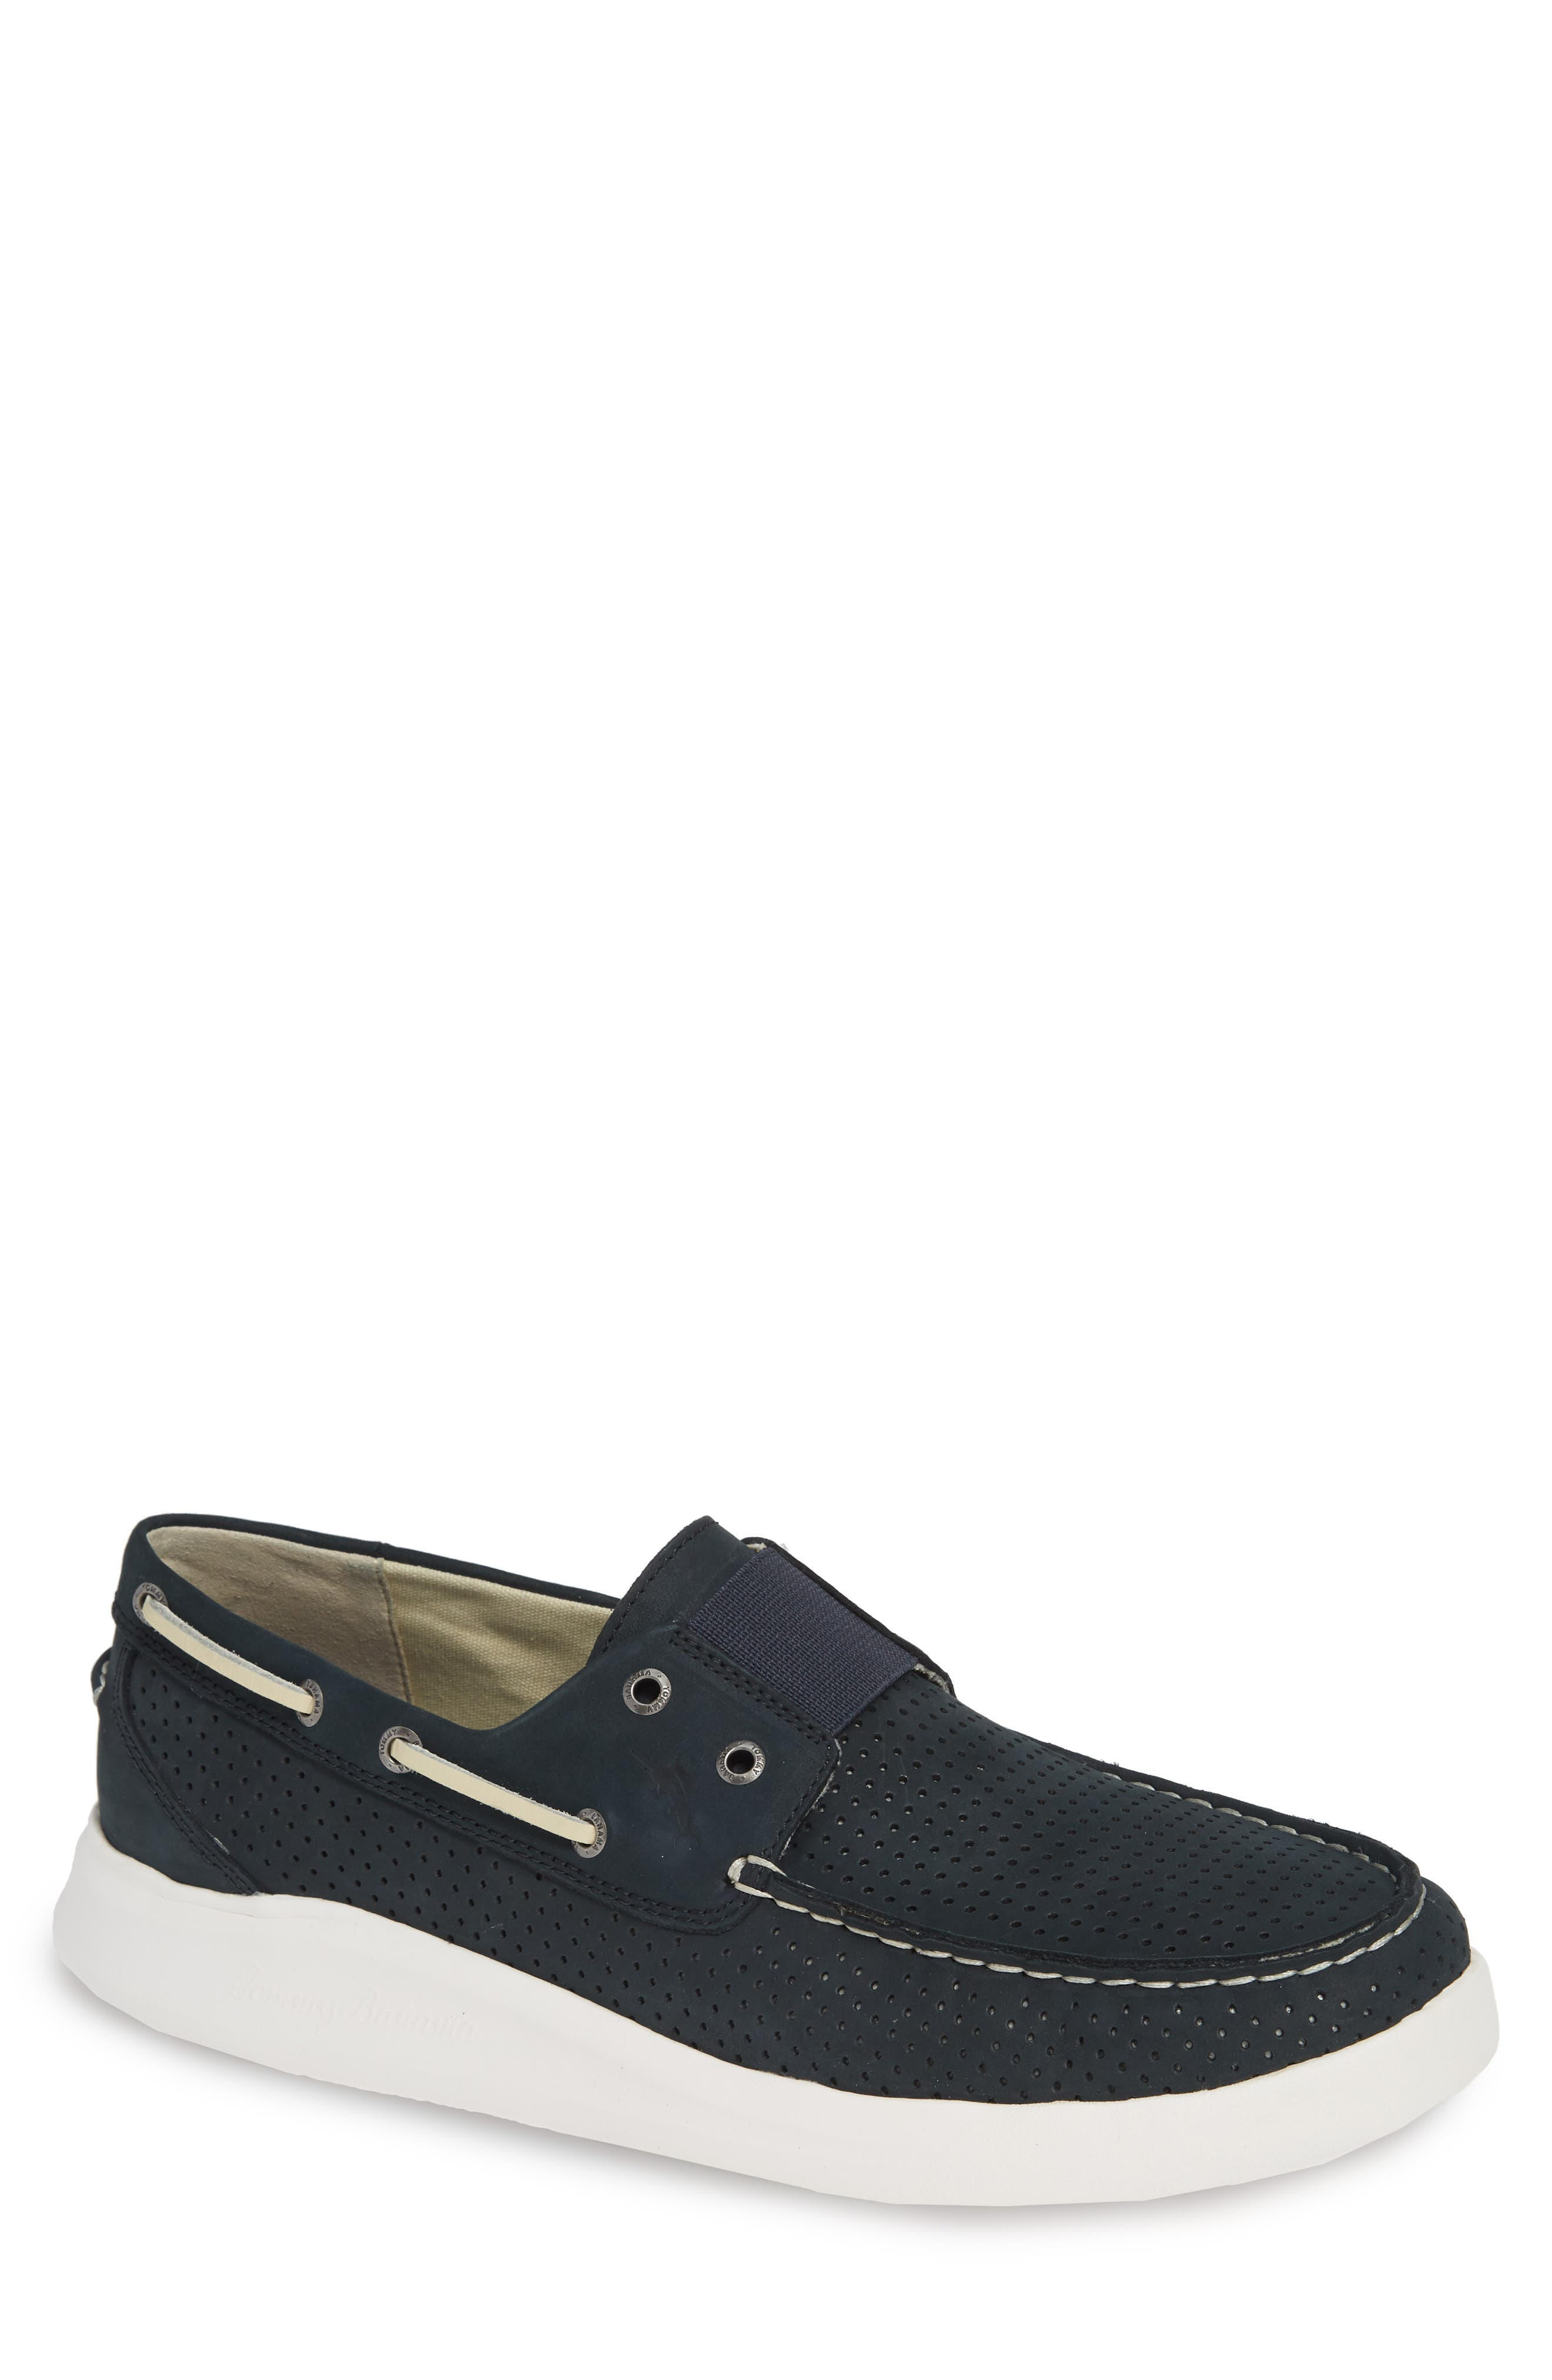 Relaxology<sup>®</sup> Aeonian Boat Shoe,                         Main,                         color, NAVY NUBUCK